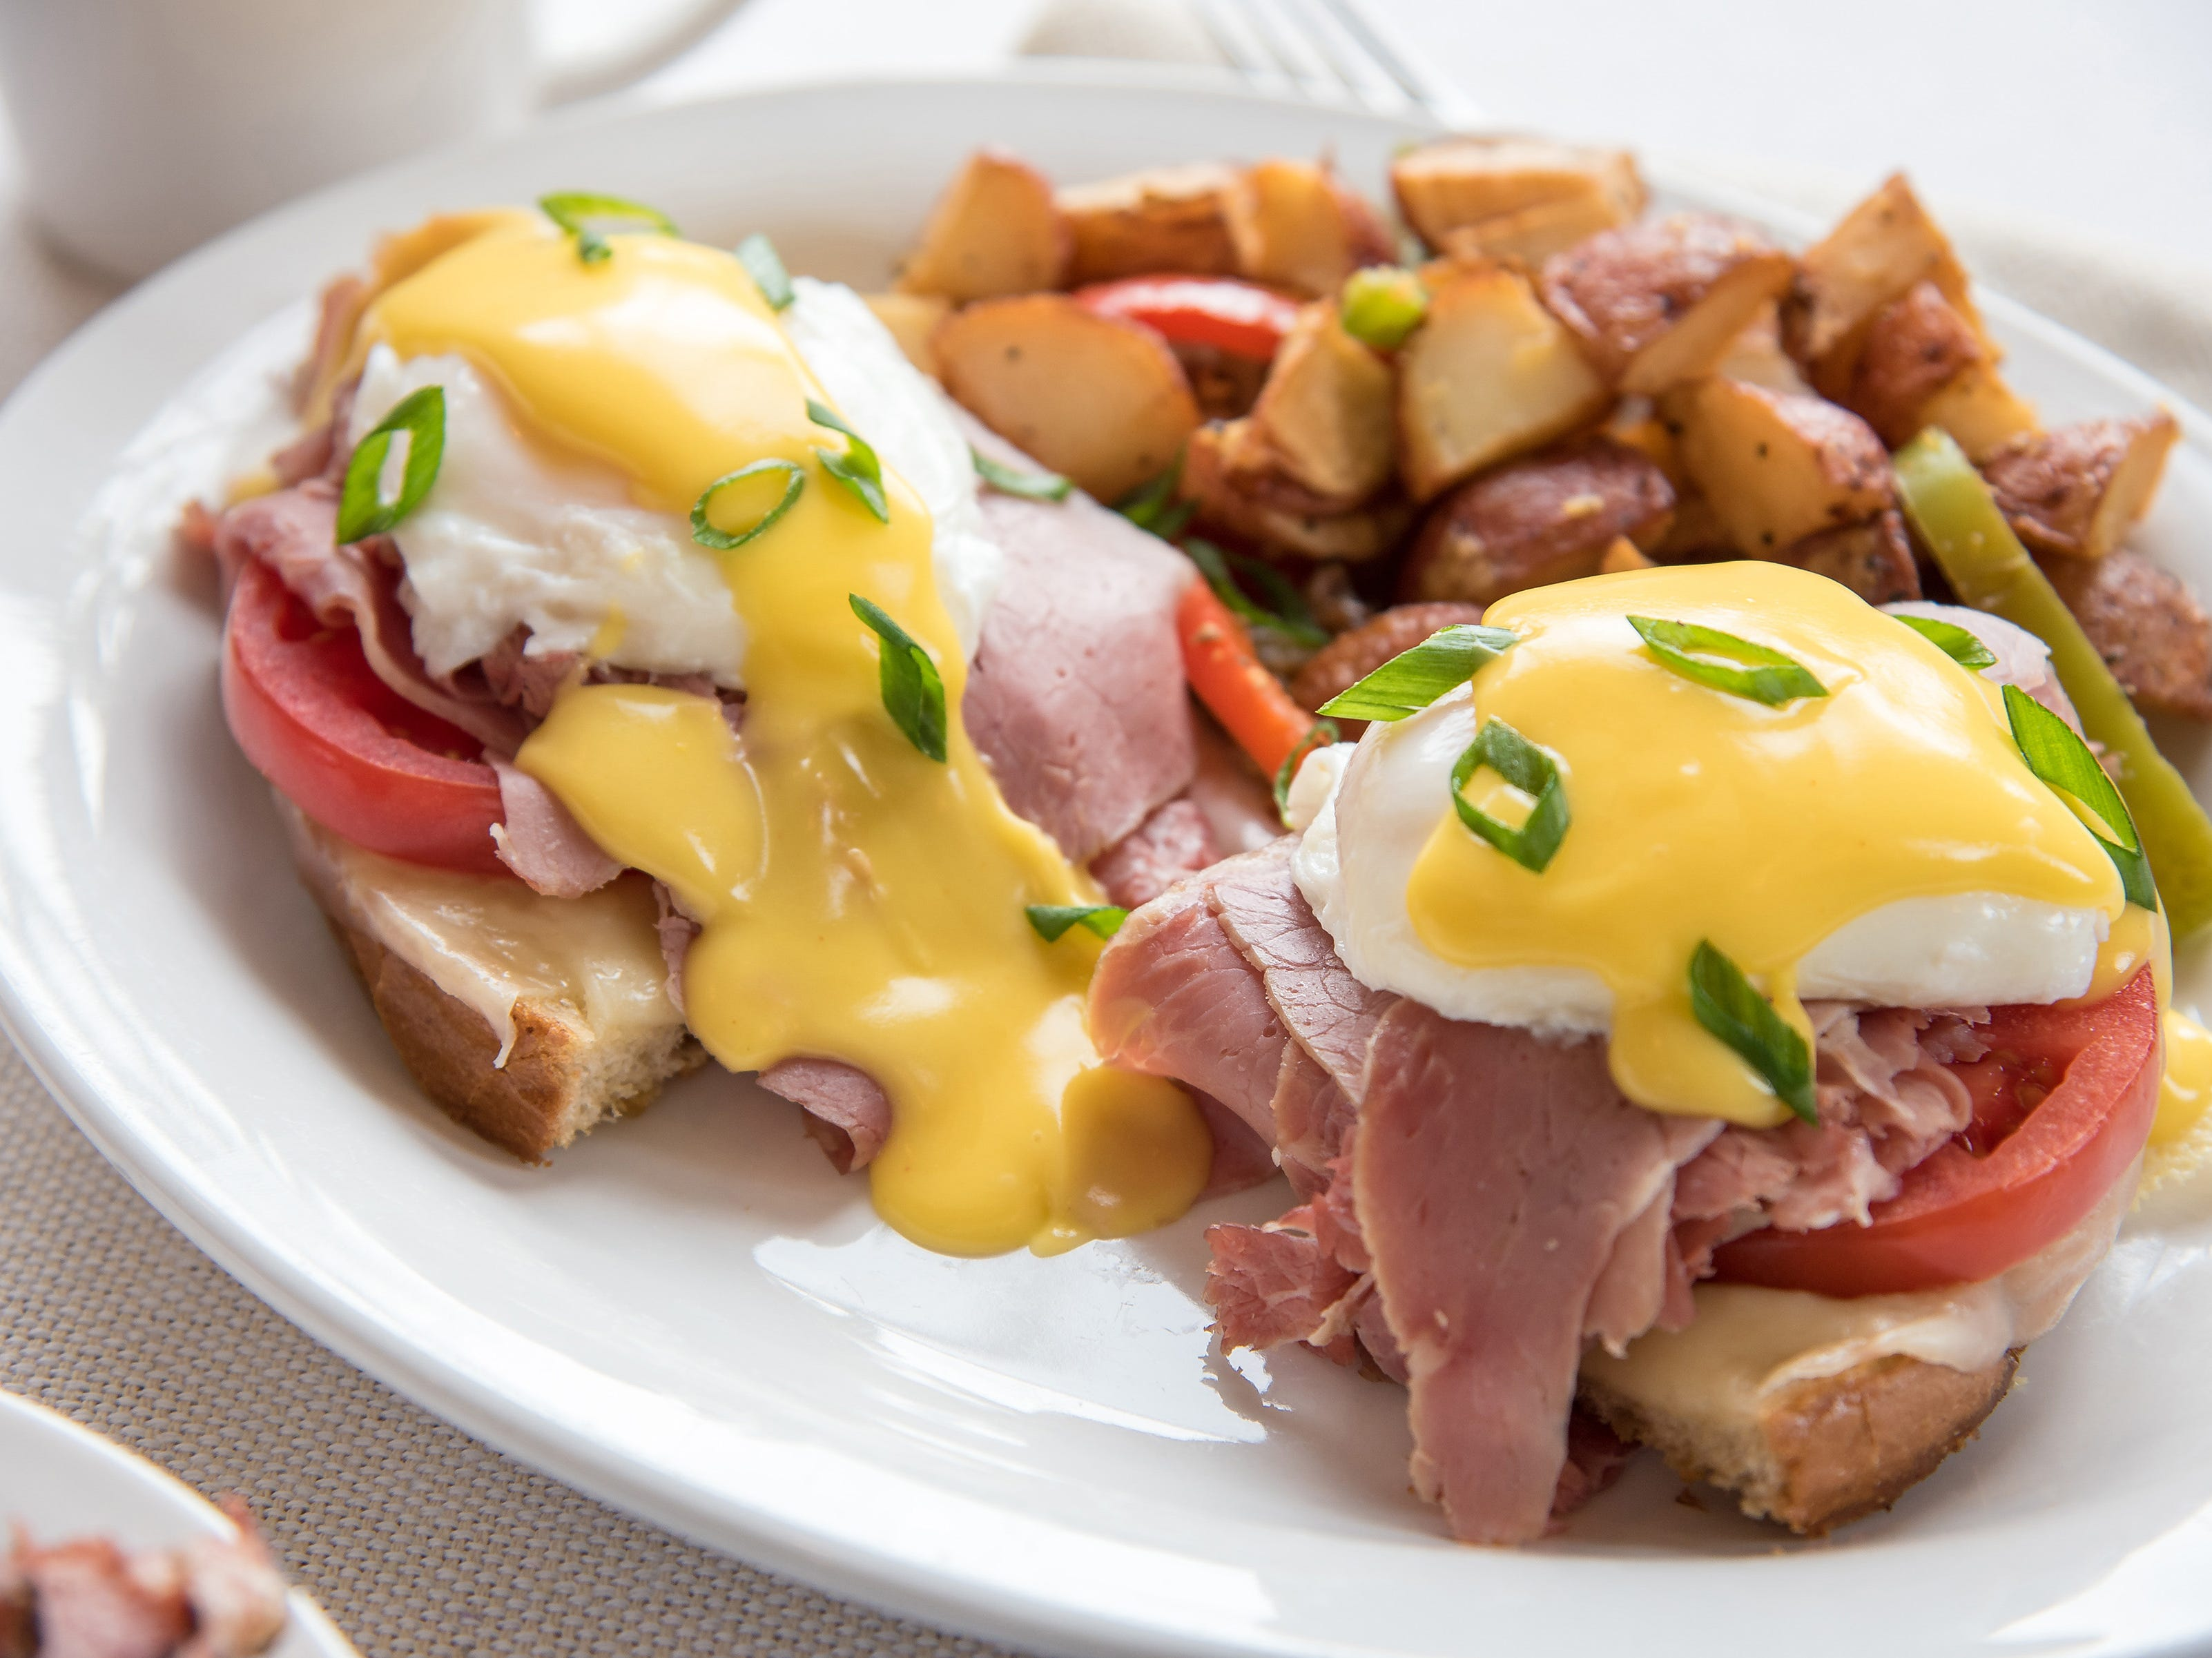 Pastrami Eggs Benedict is one of many breakfast choices at TooJay's Deli.